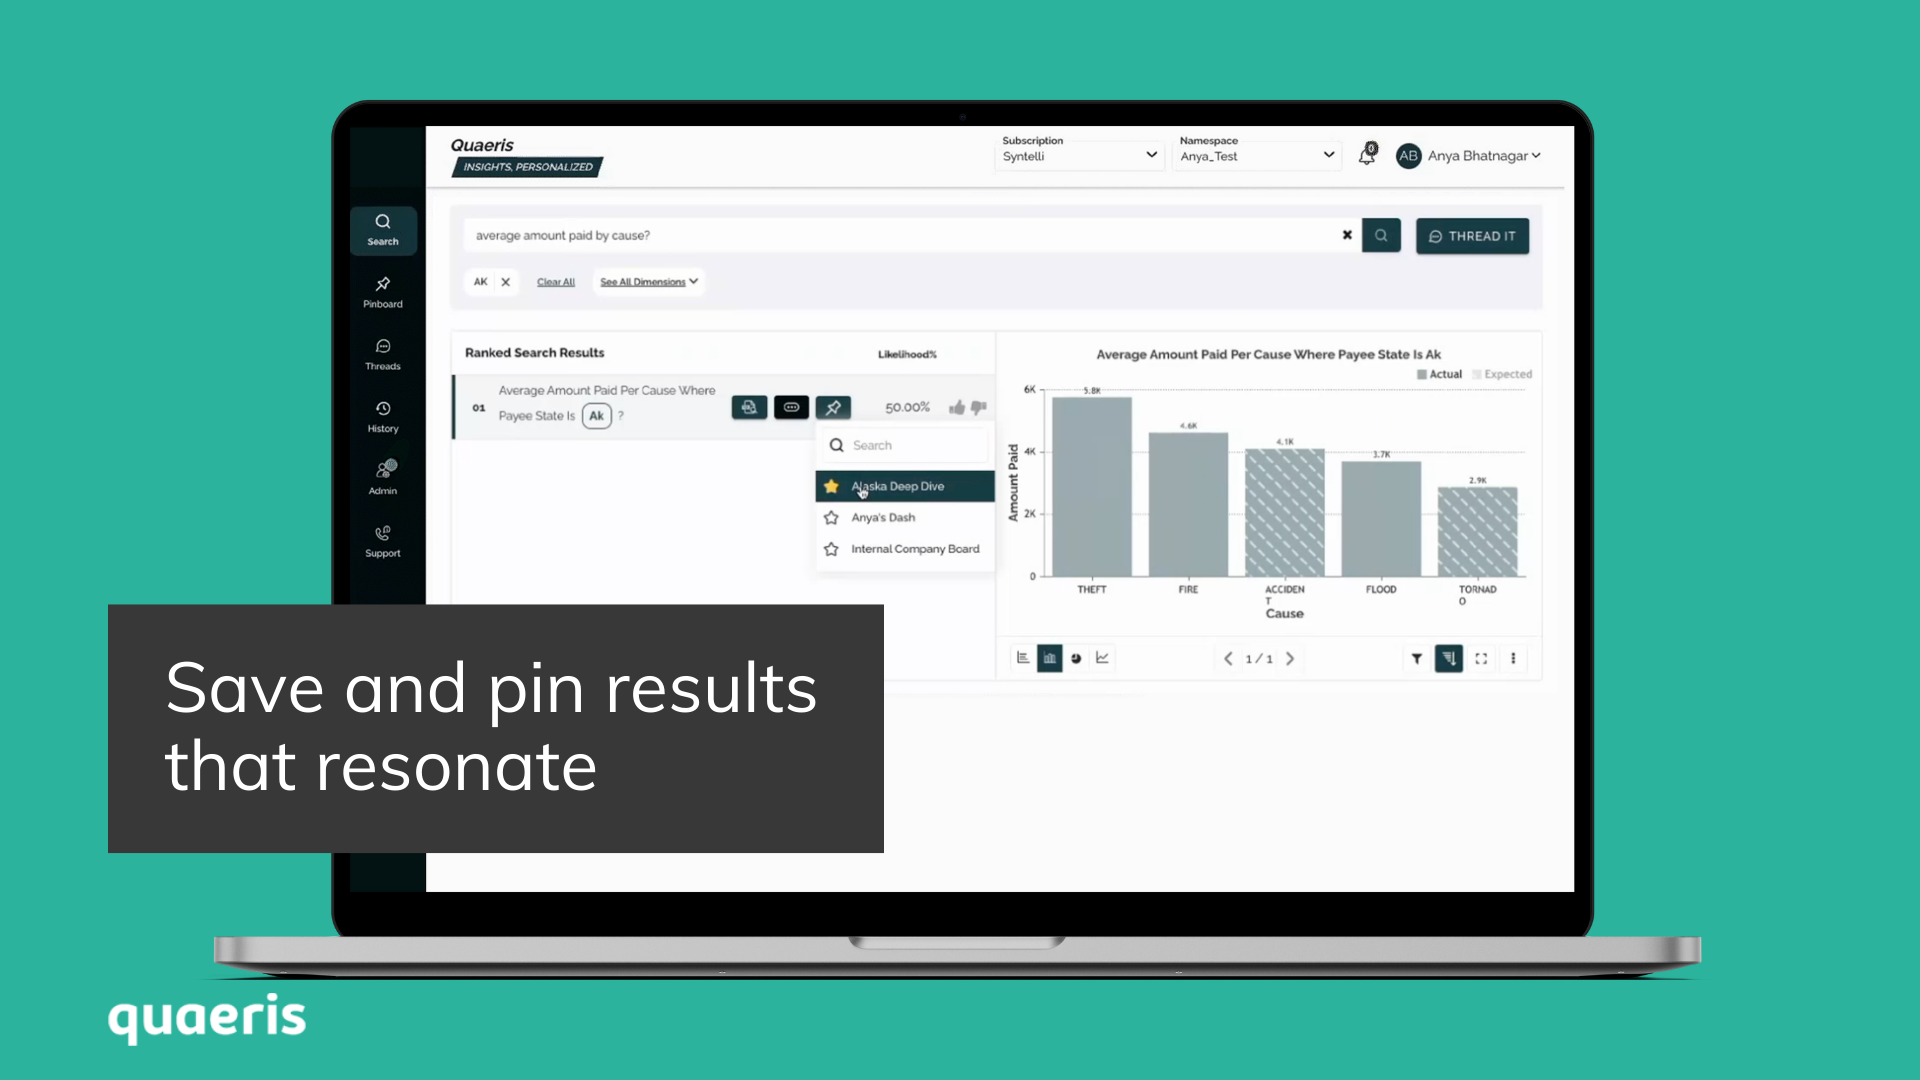 Save and pin results that resonate